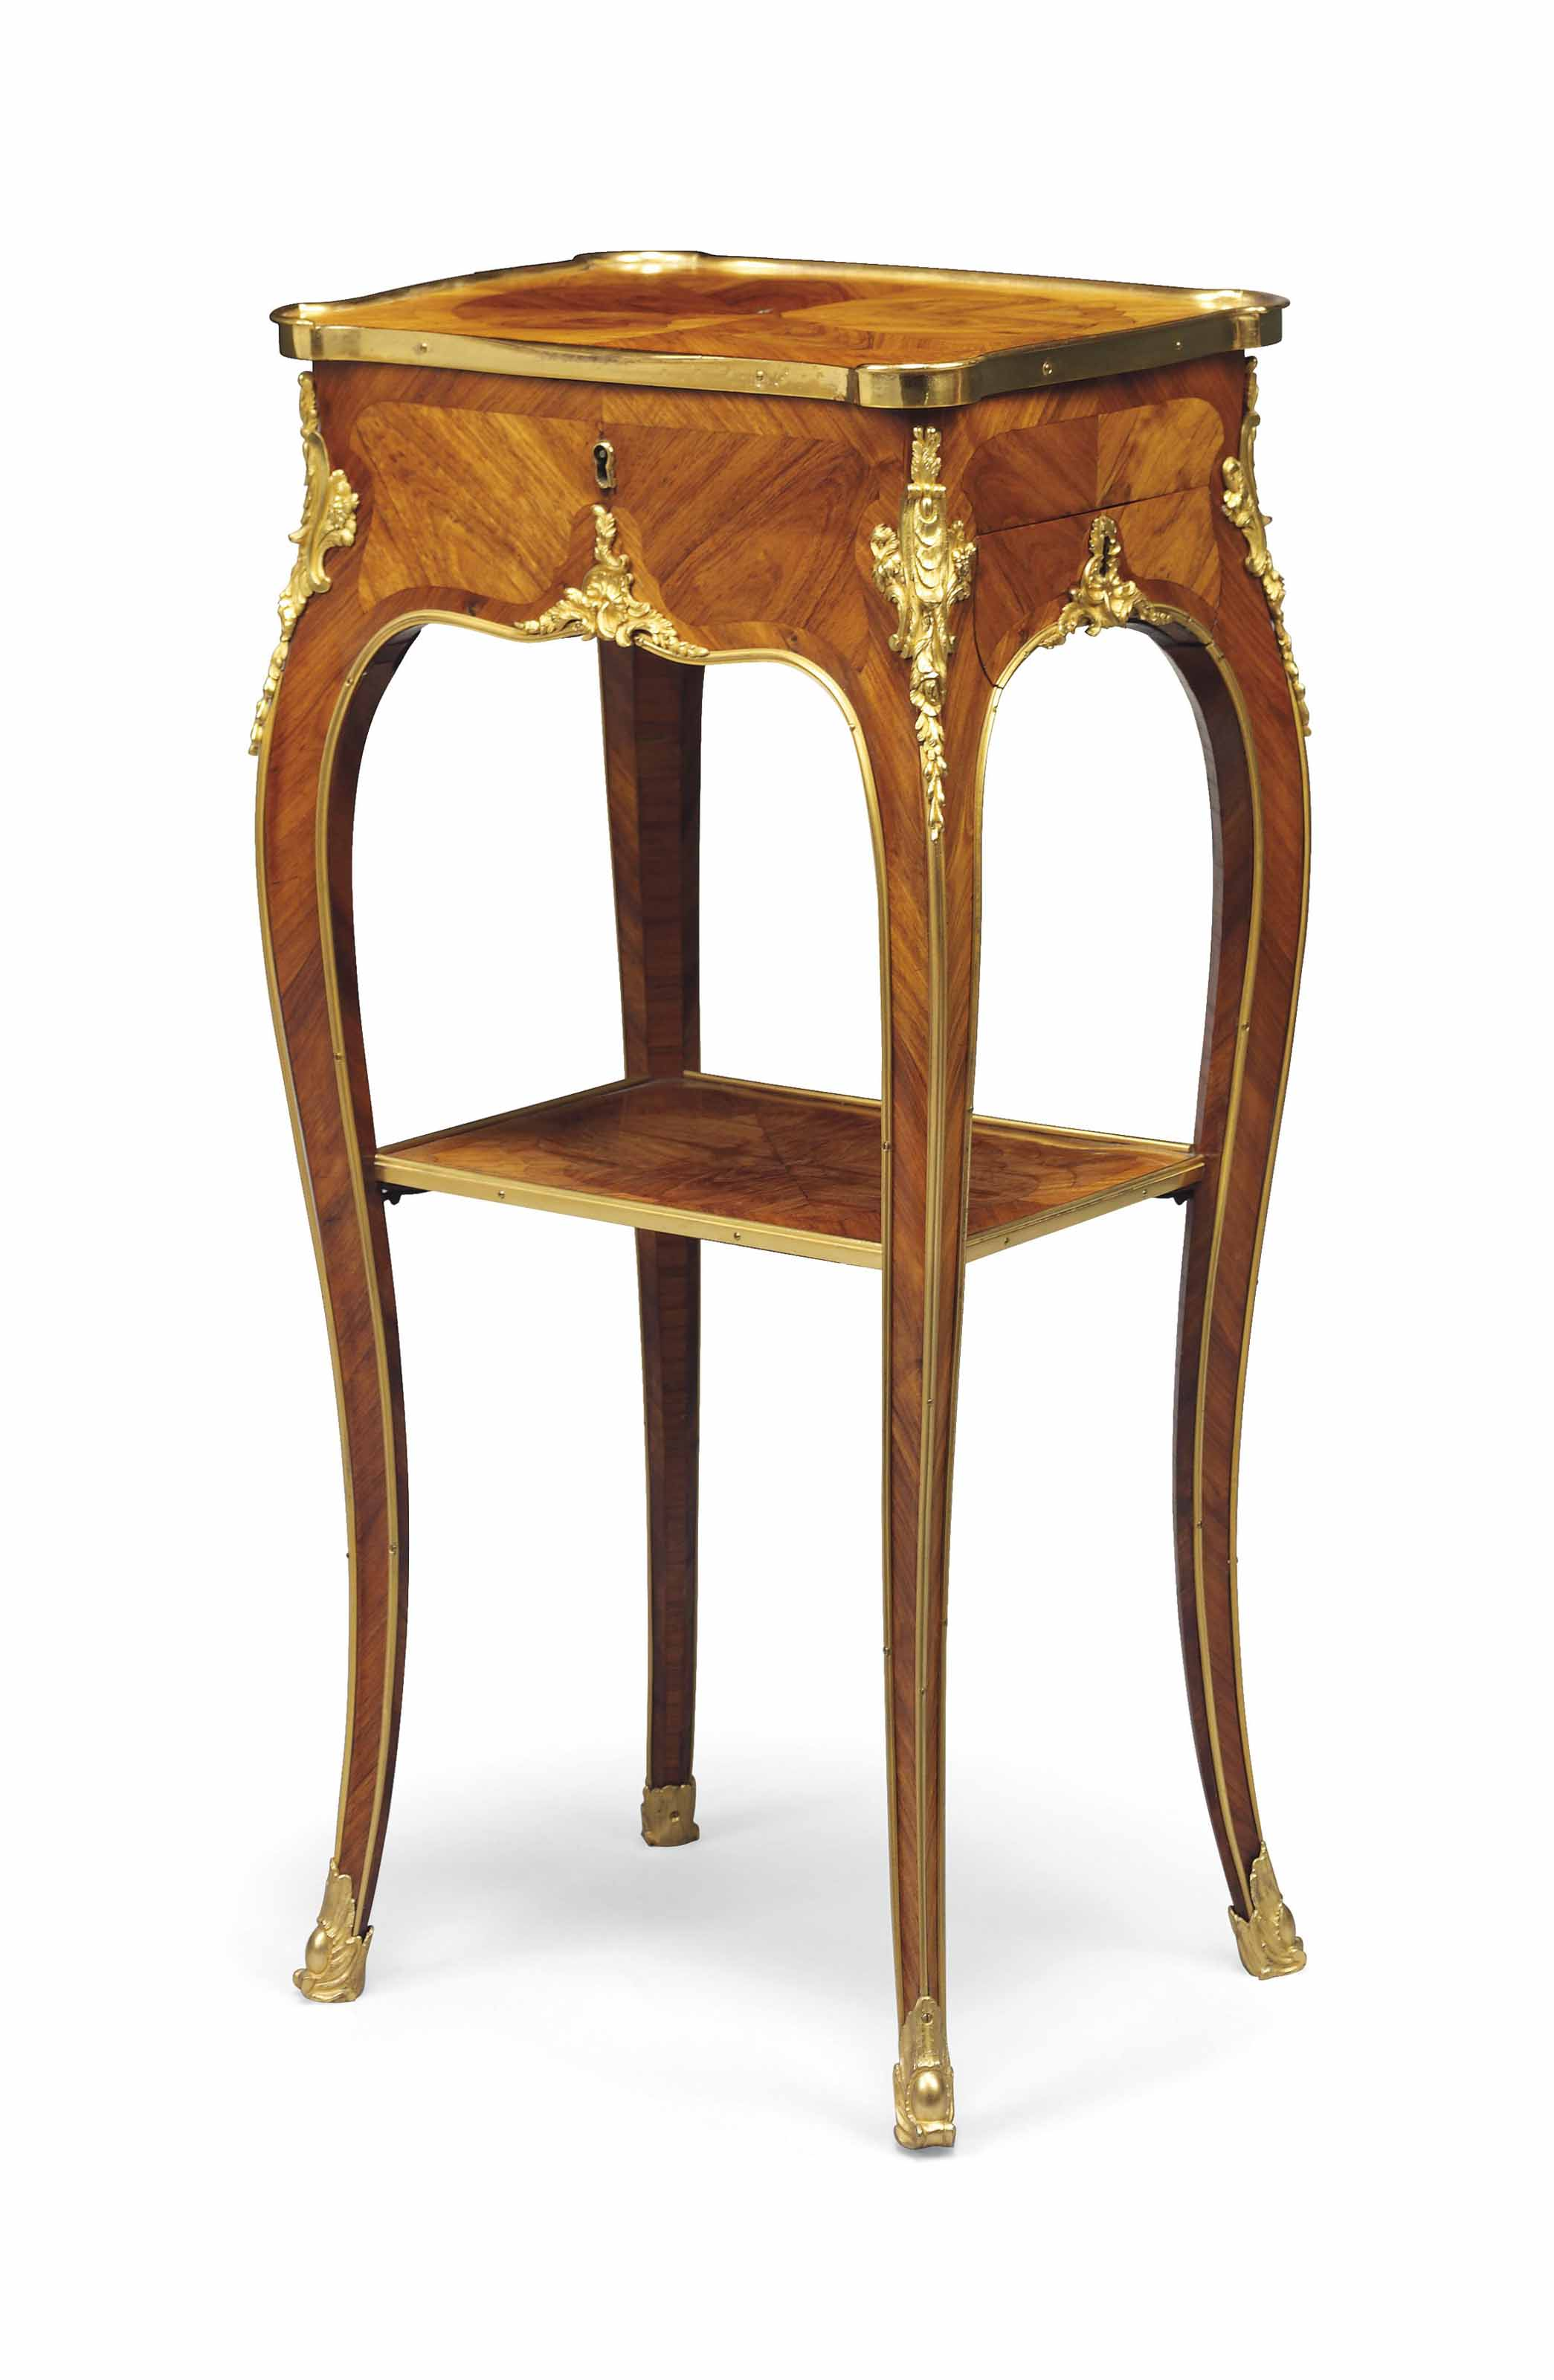 A LOUIS XV ORMOLU-MOUNTED TULIPWOOD, BOIS SATINE AND PARQUETRY TABLE A ECRIRE